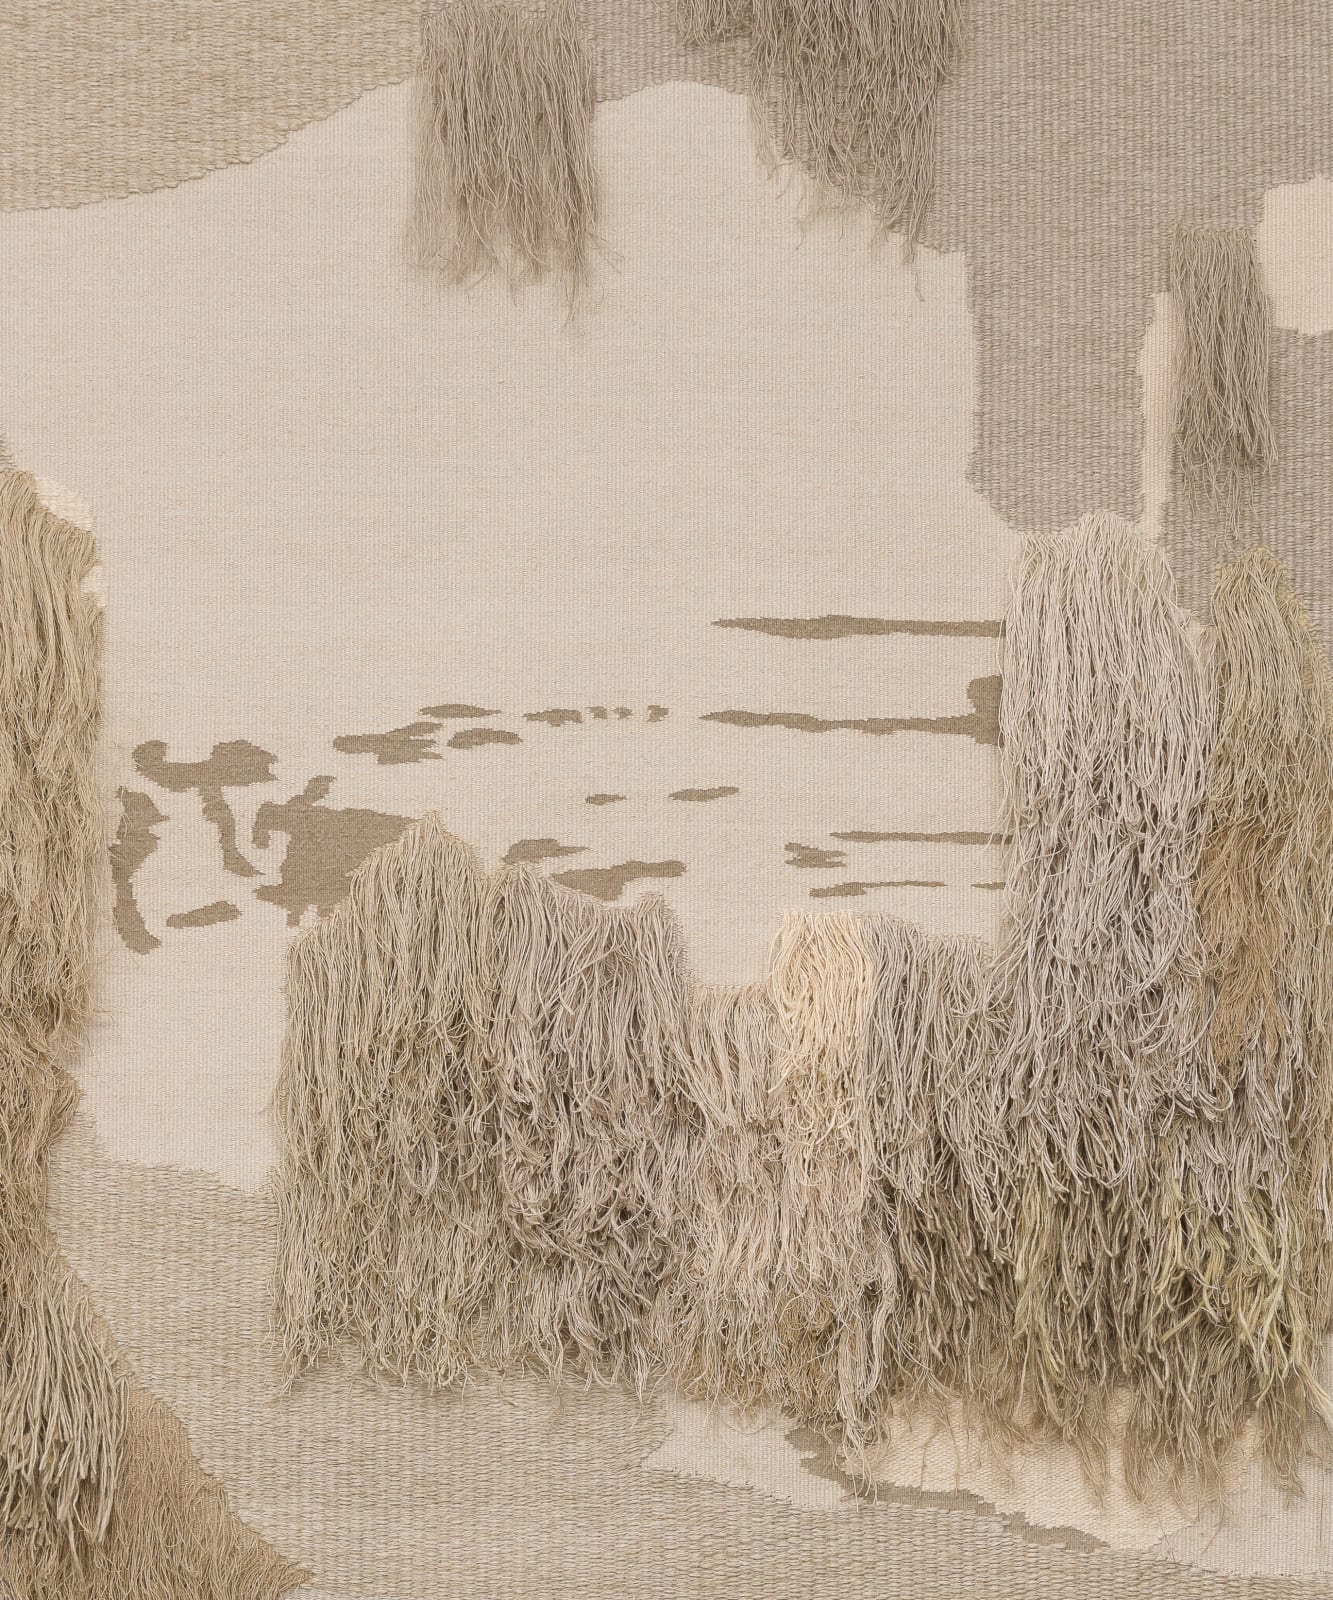 "<p>Andreas Eriksson, <em>Weissensee No. 12</em>, 2018 - 2019. Detail.</p><h3>""Territories of the finished tapestries might be distinguished by a particular knotted texture or the stands of long fibre sprouting from the surface. Andreas has described the tapestries as 'existential landscapes'. We might also see them as a conceptual extension of painting in which the picture migrates to the canvas itself."" </h3><p><strong>- Hettie Judah on Andreas Eriksson, 2020</strong></p>"